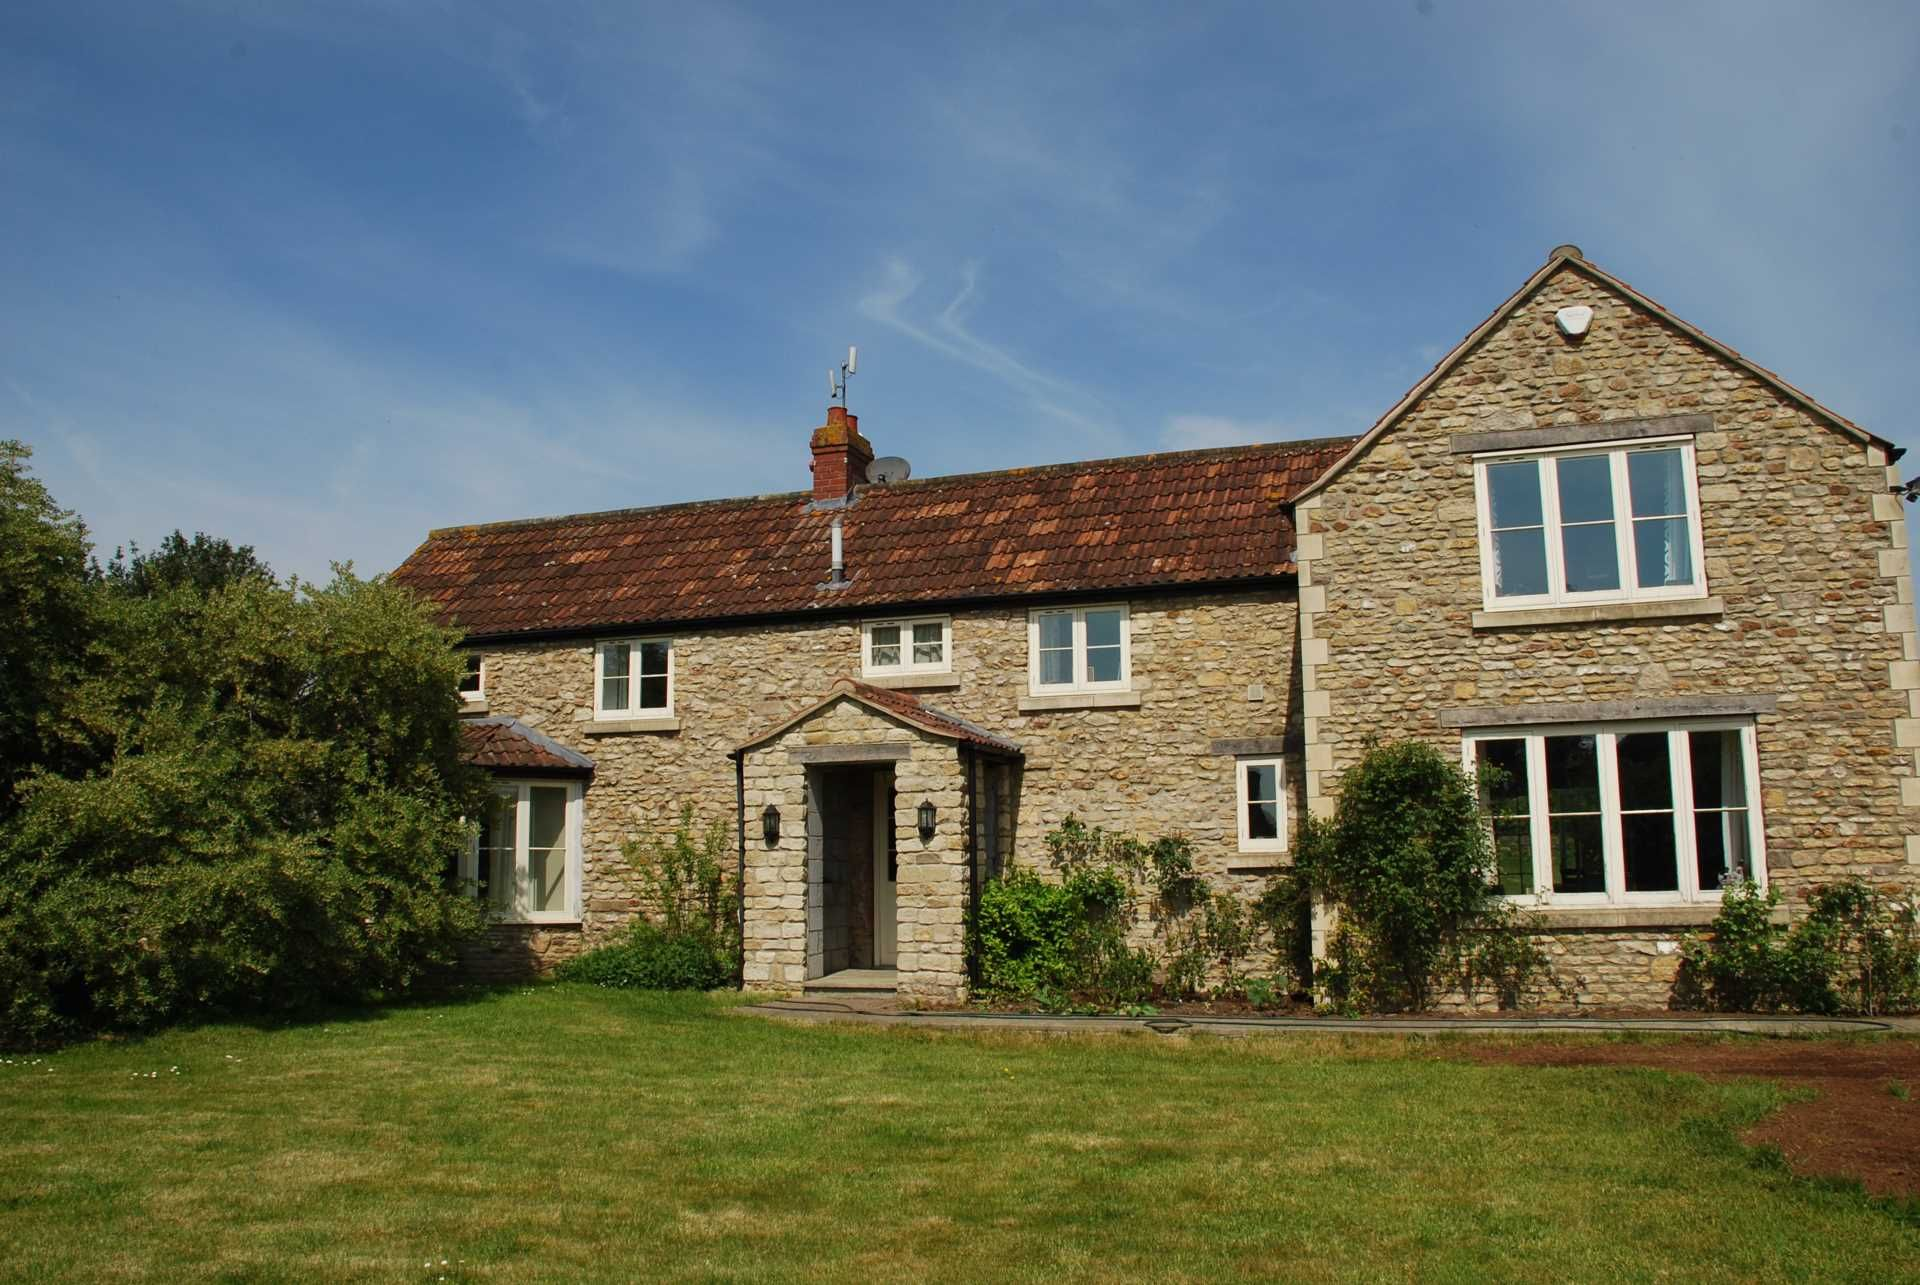 4 bedroom house to rent, The Old Post House, Great Elm, Frome, BA11